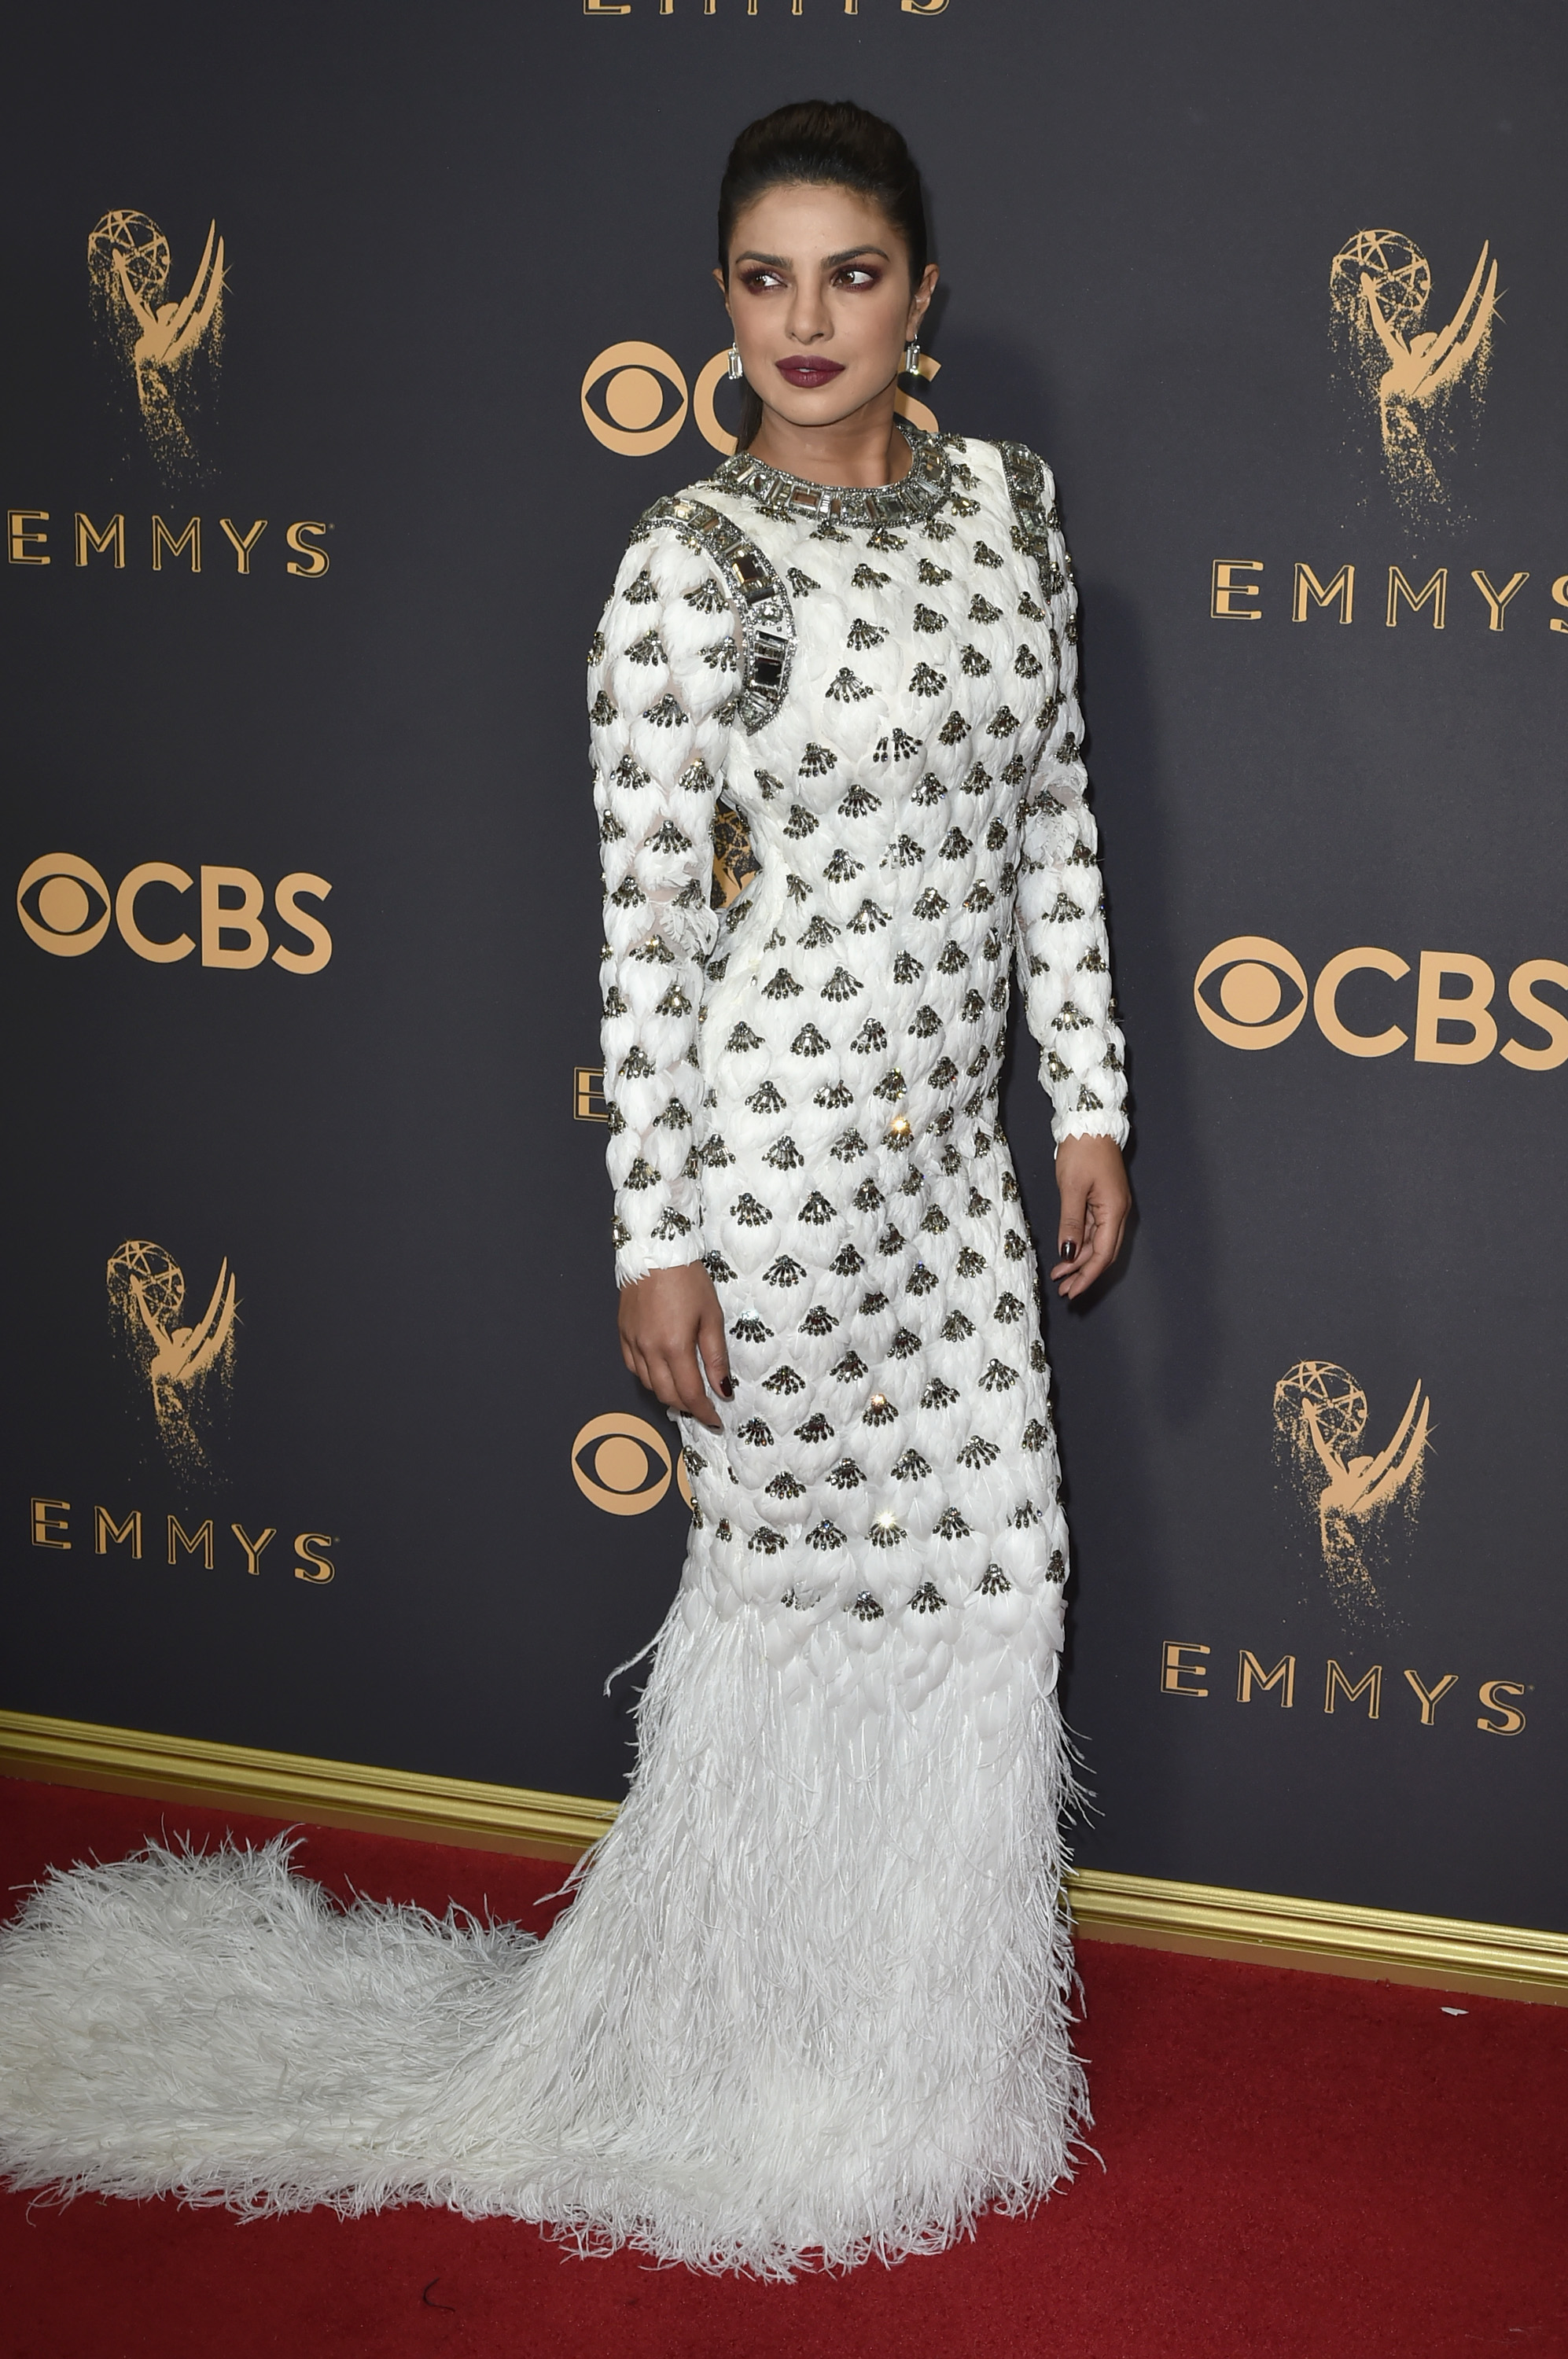 Priyanka Chopra, look, dress, Emmy awards, emmys, balmain